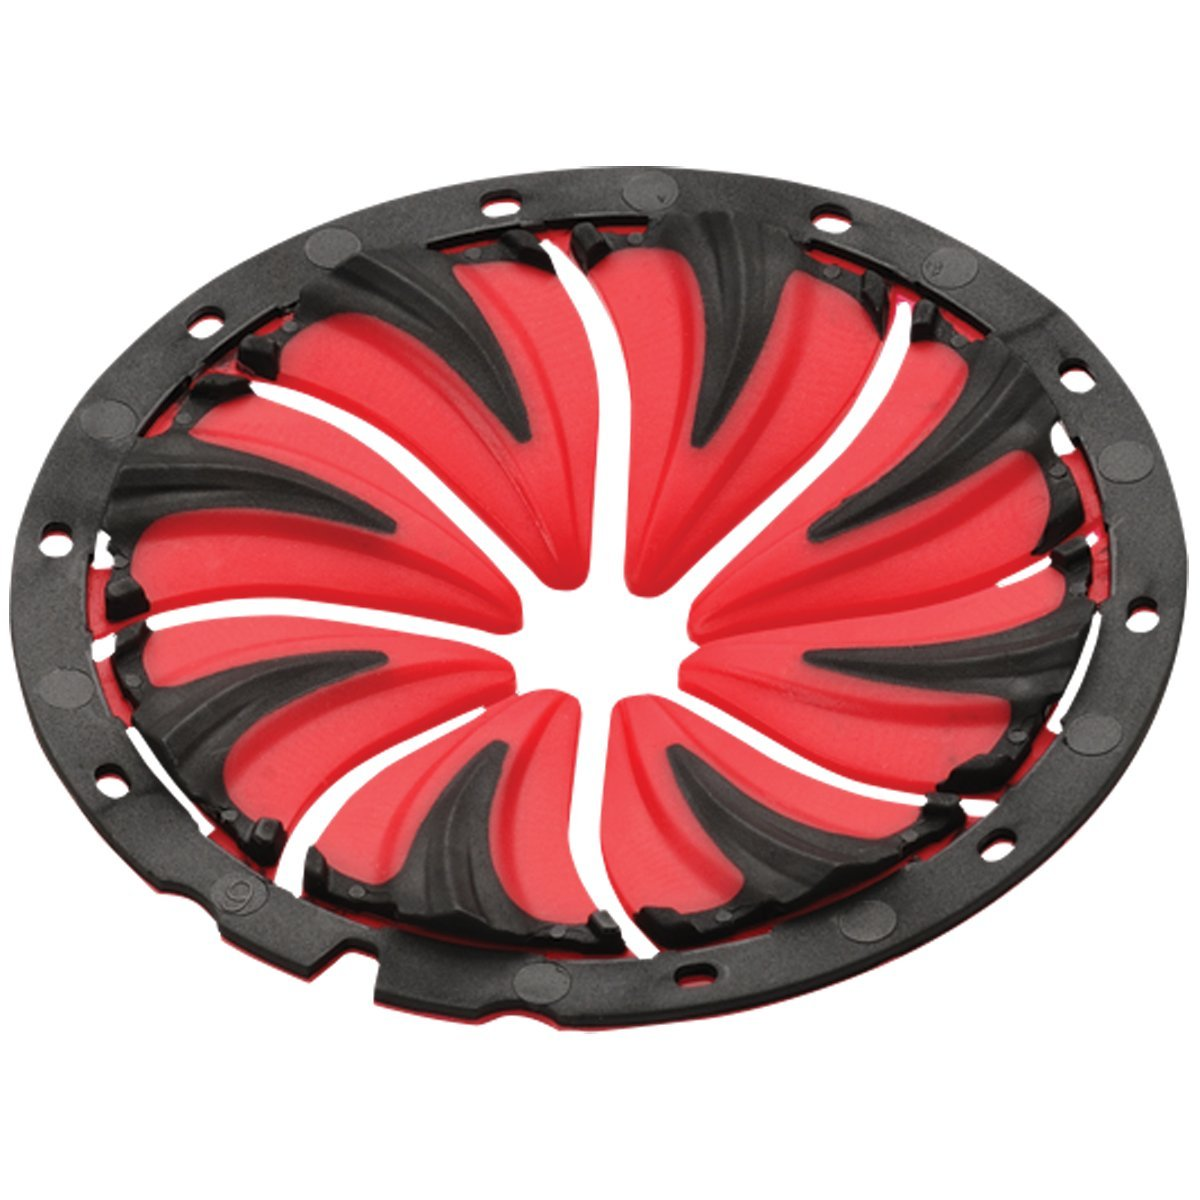 Dye Precision Rotor Loader Quick Feed - Black/Red by Dye